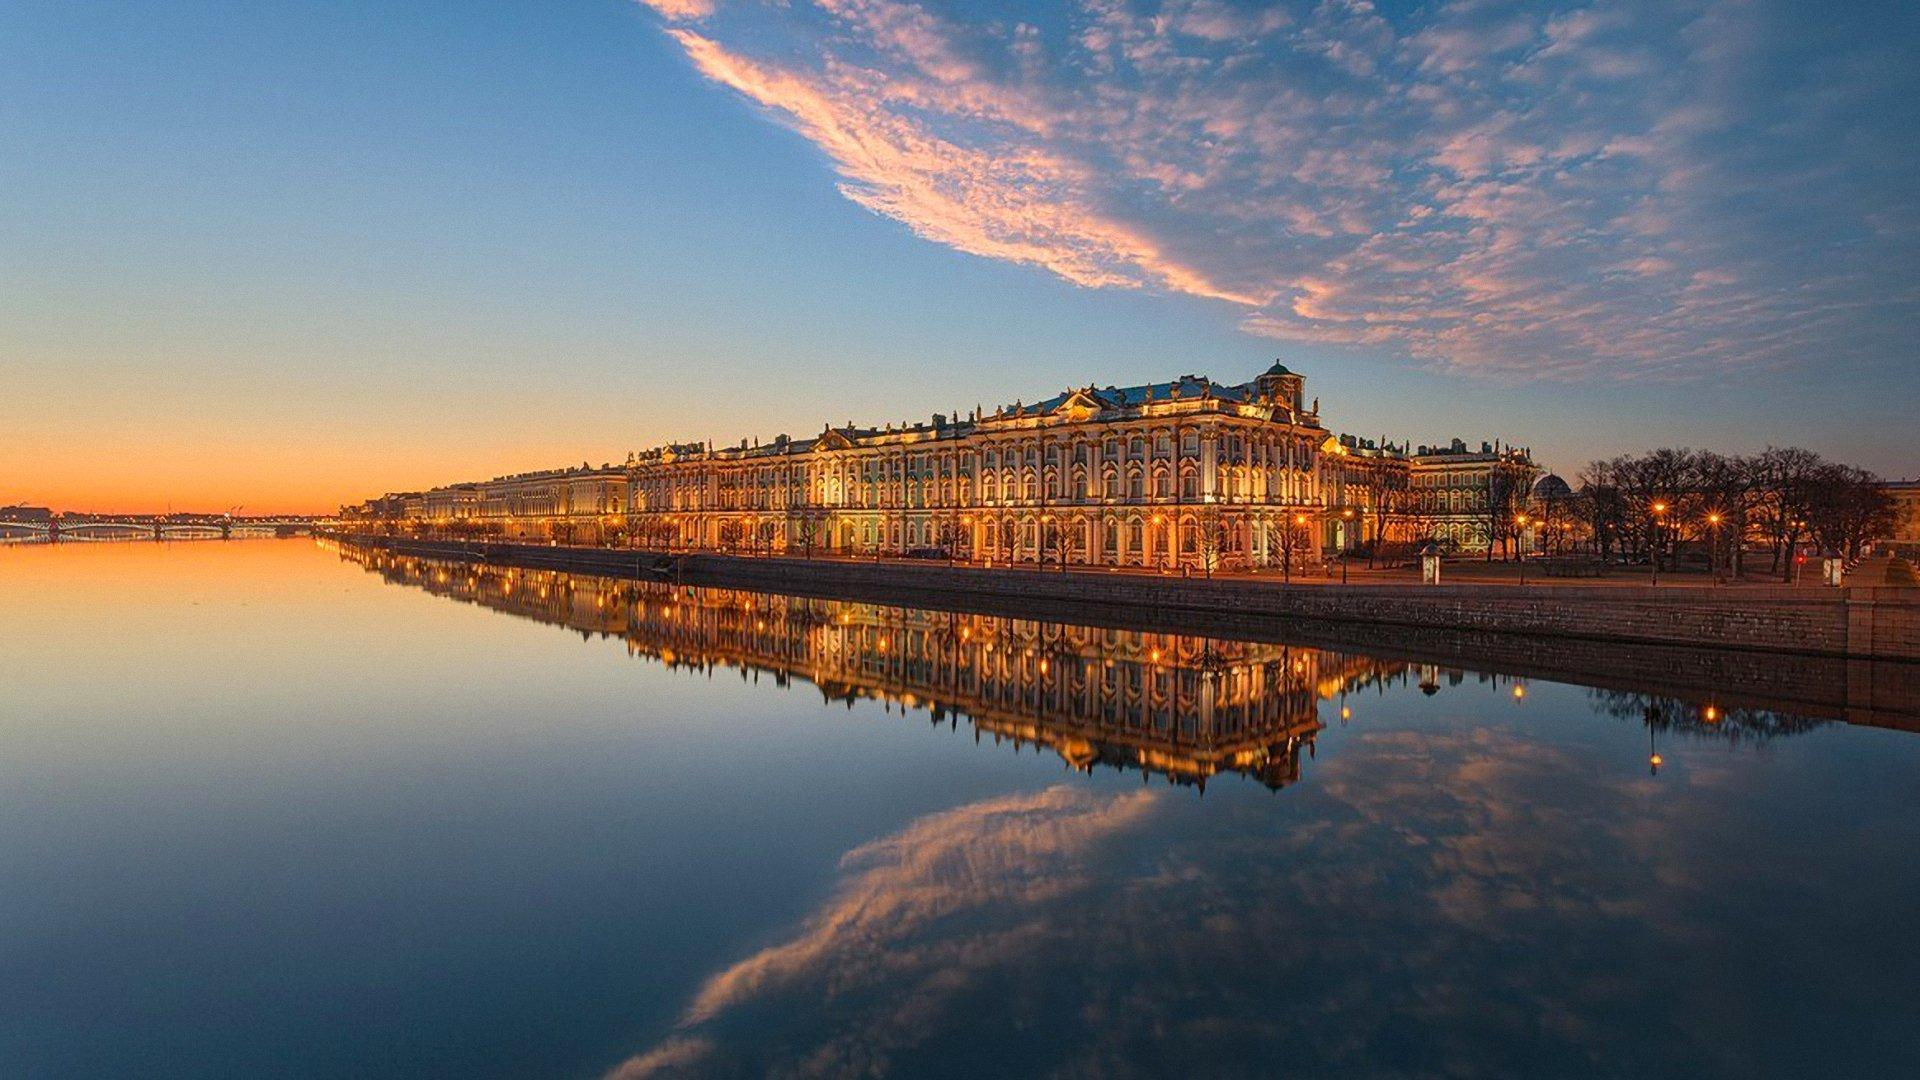 Saint Petersburg Wallpaper 28 - 1920 X 1080 | stmed.net